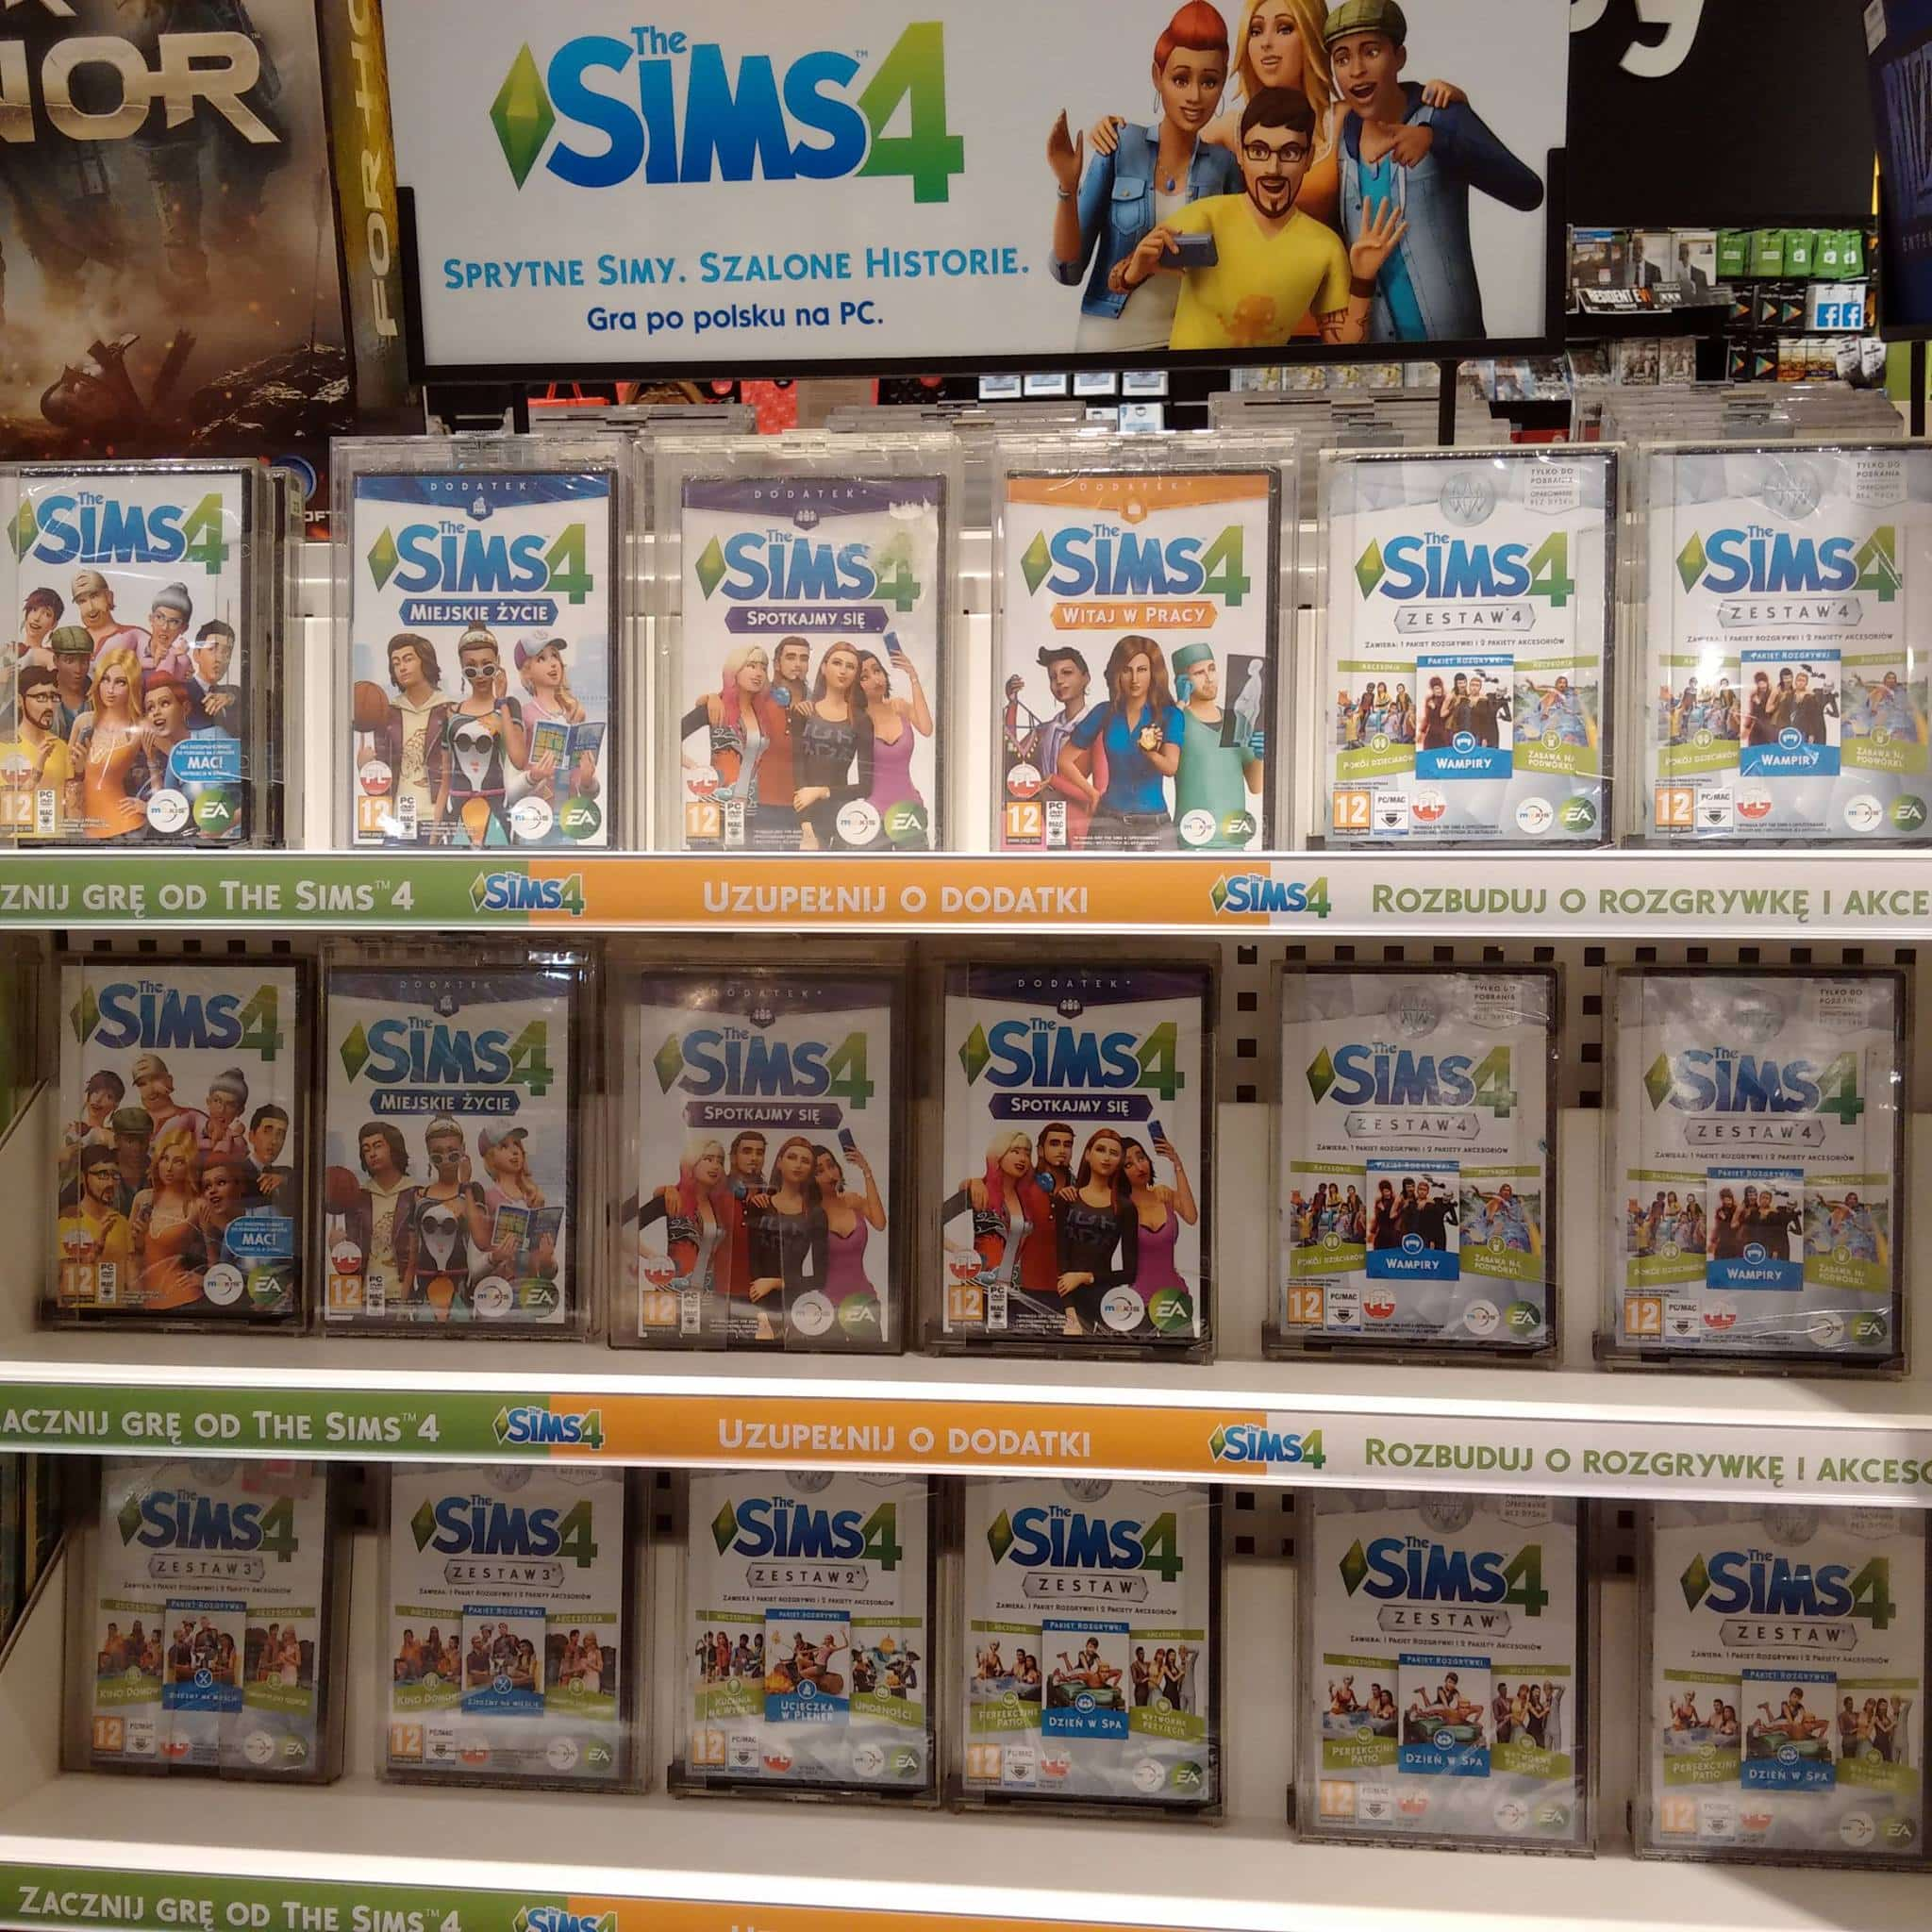 The Sims 4 Bundle Pack 4 Now Available in Retail Stores Worldwide